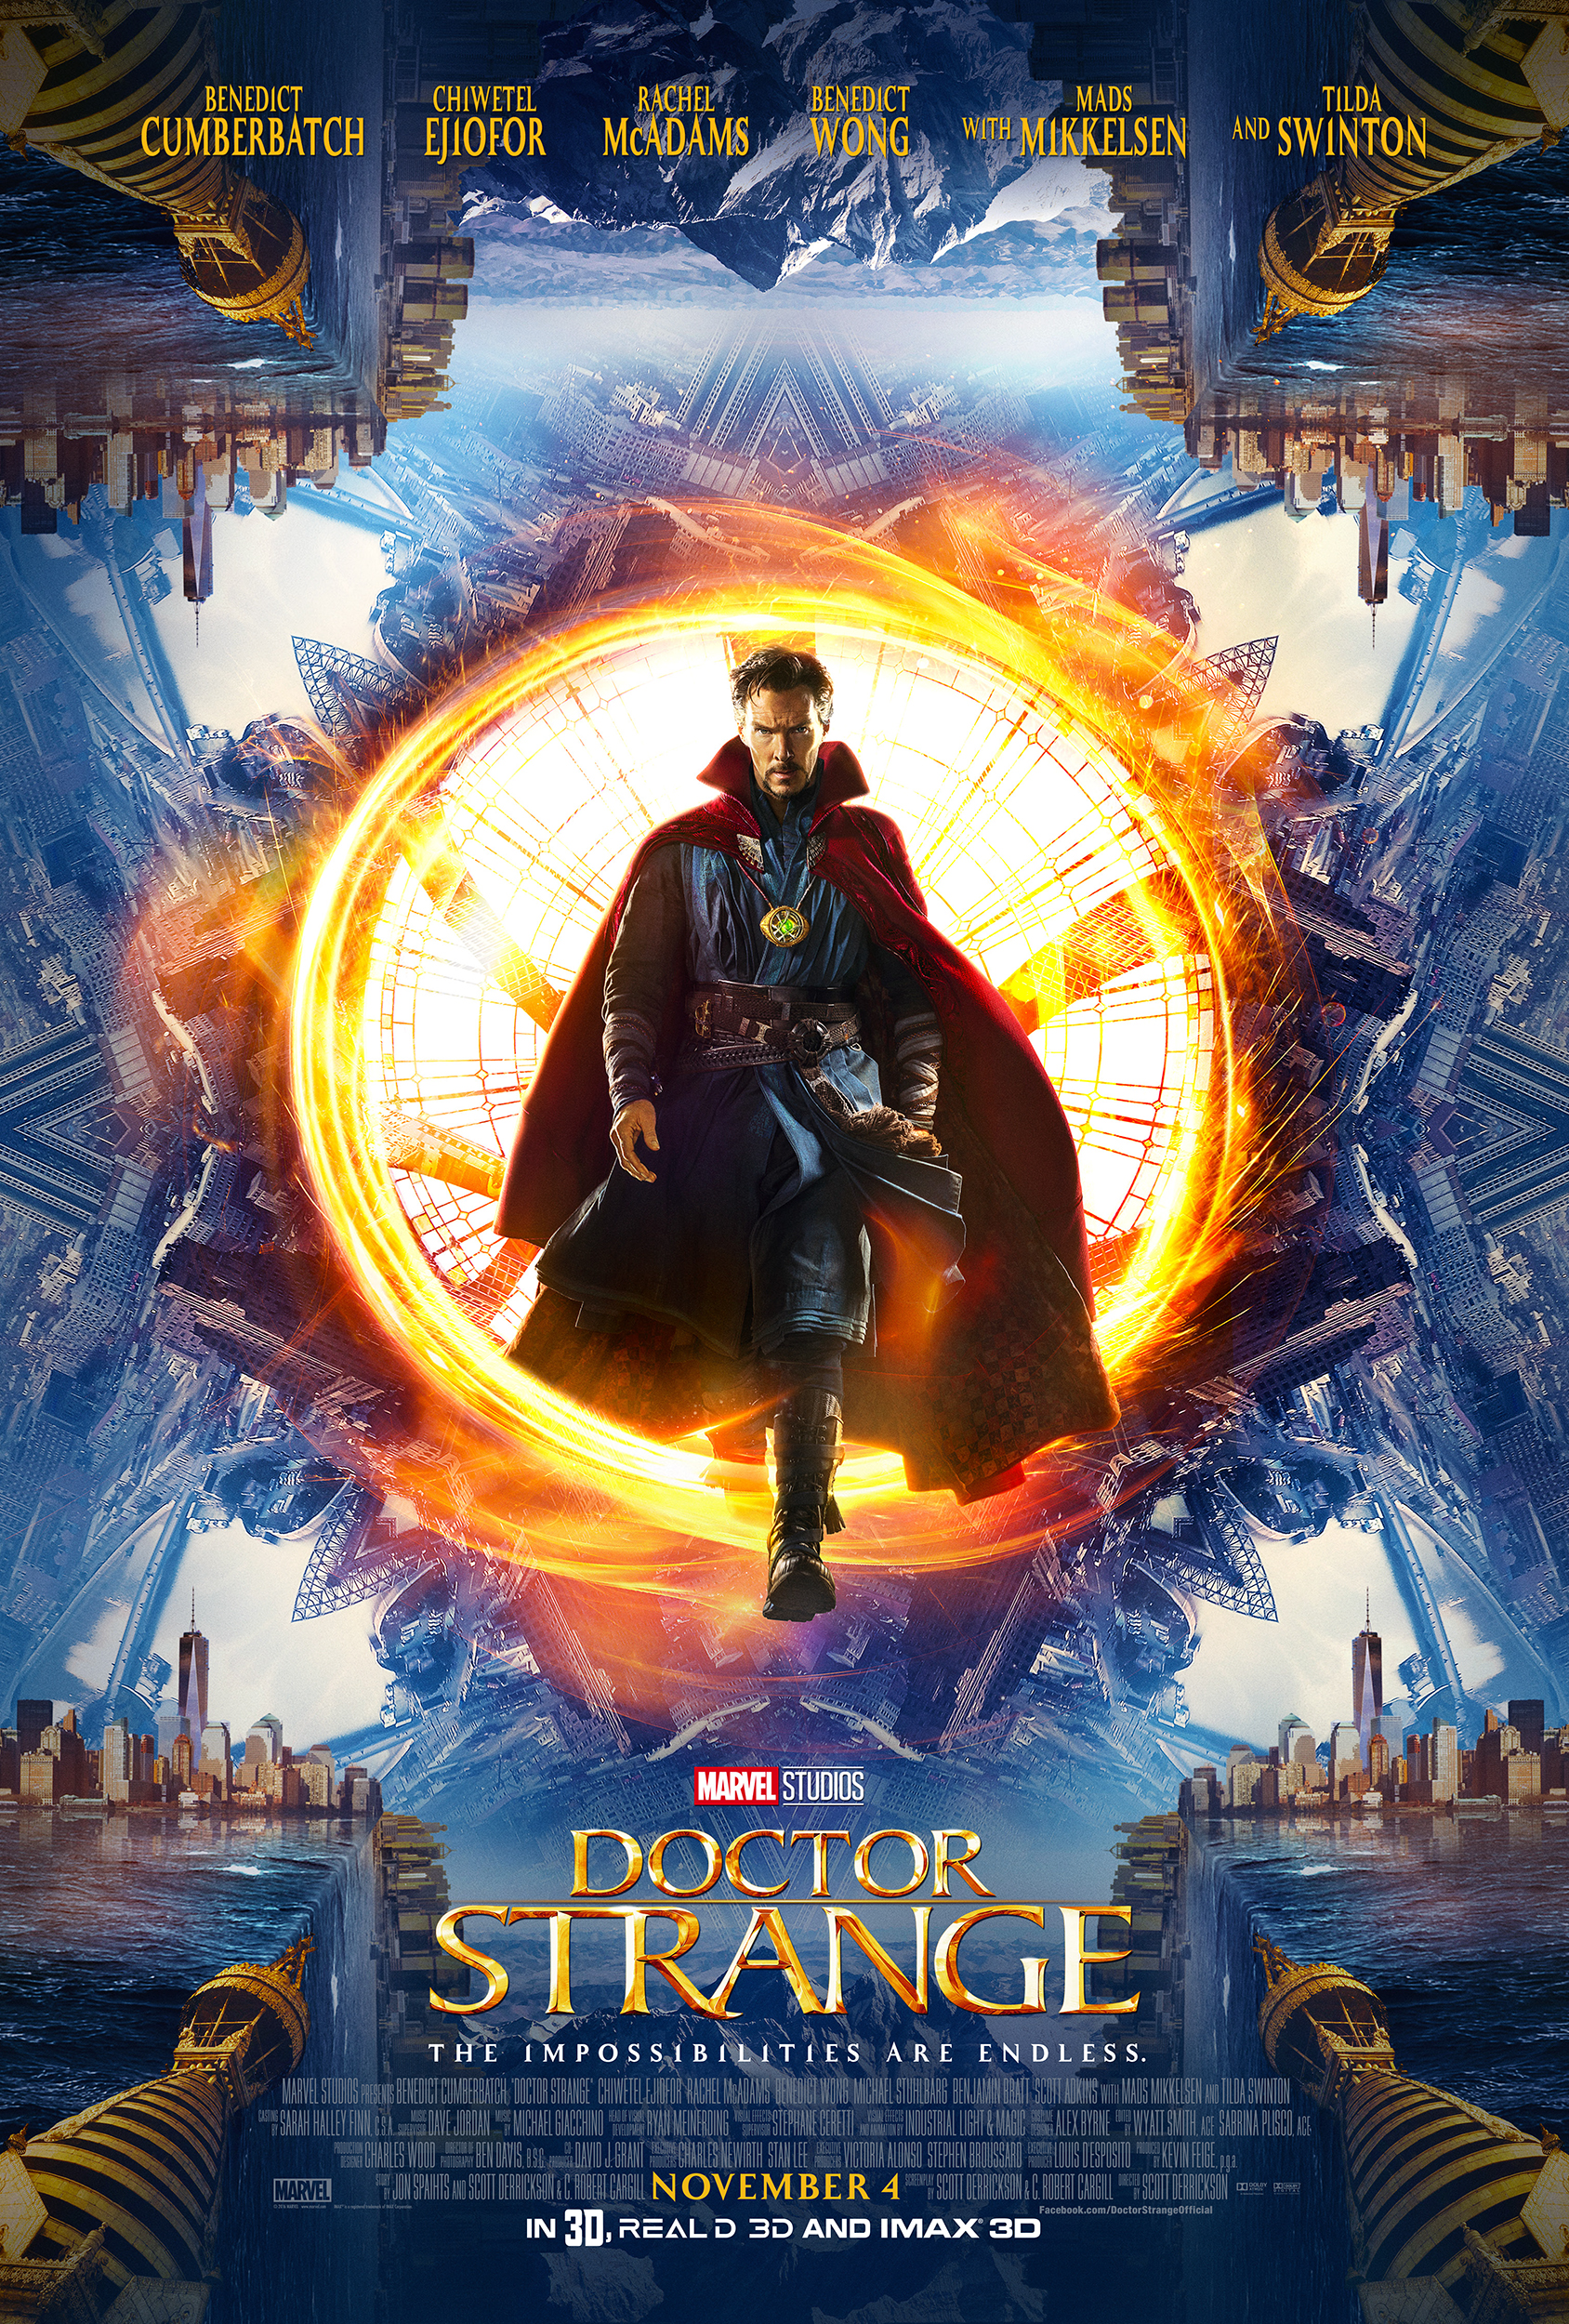 New Poster And Trailer For Marvel's Doctor Strange #DoctorStrange